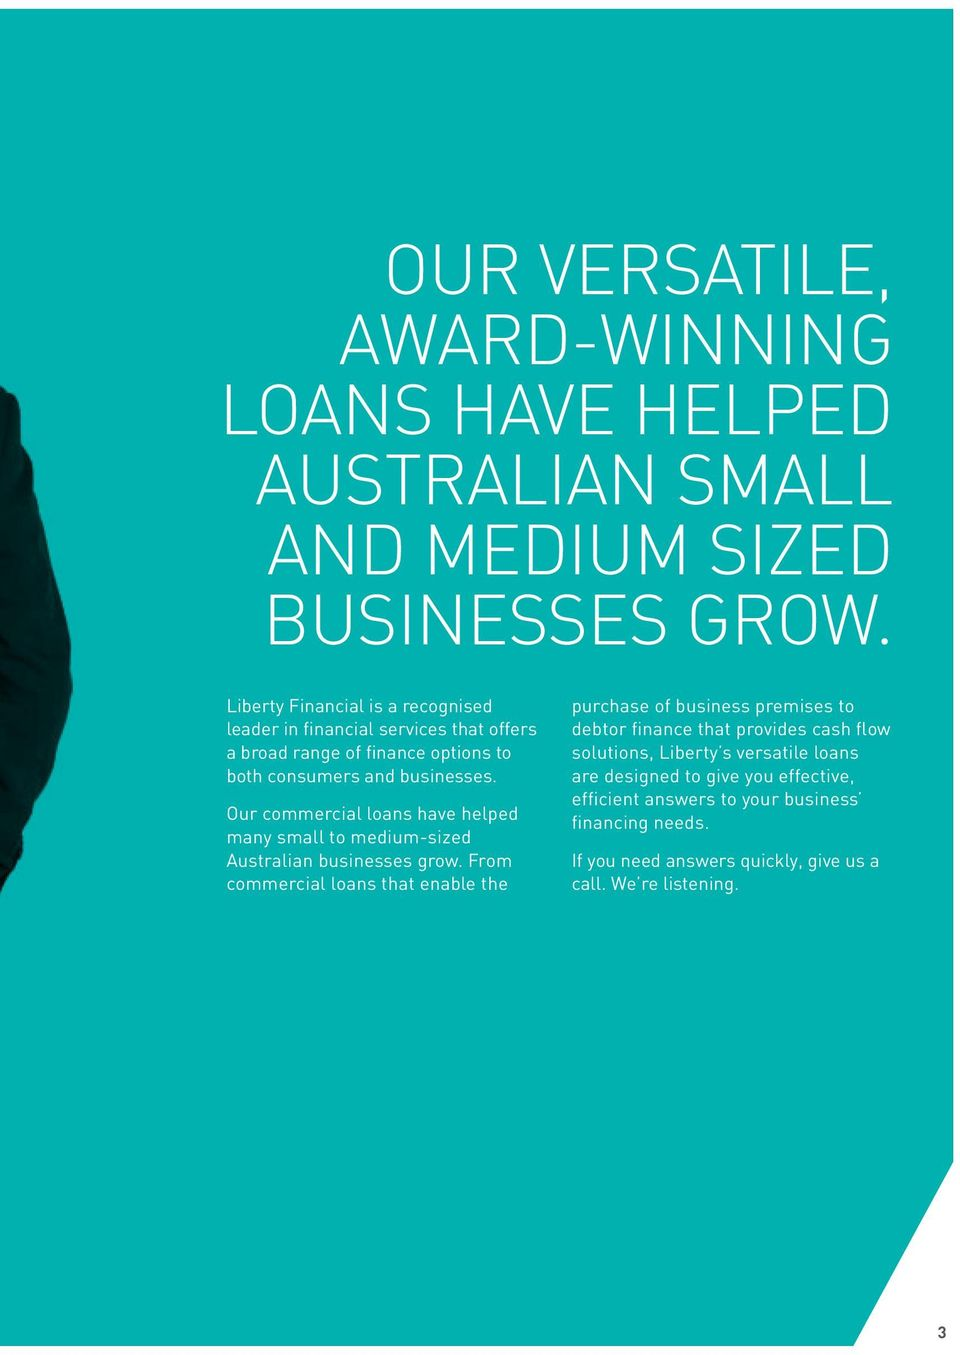 Our commercial loans have helped many small to medium-sized Australian businesses grow.